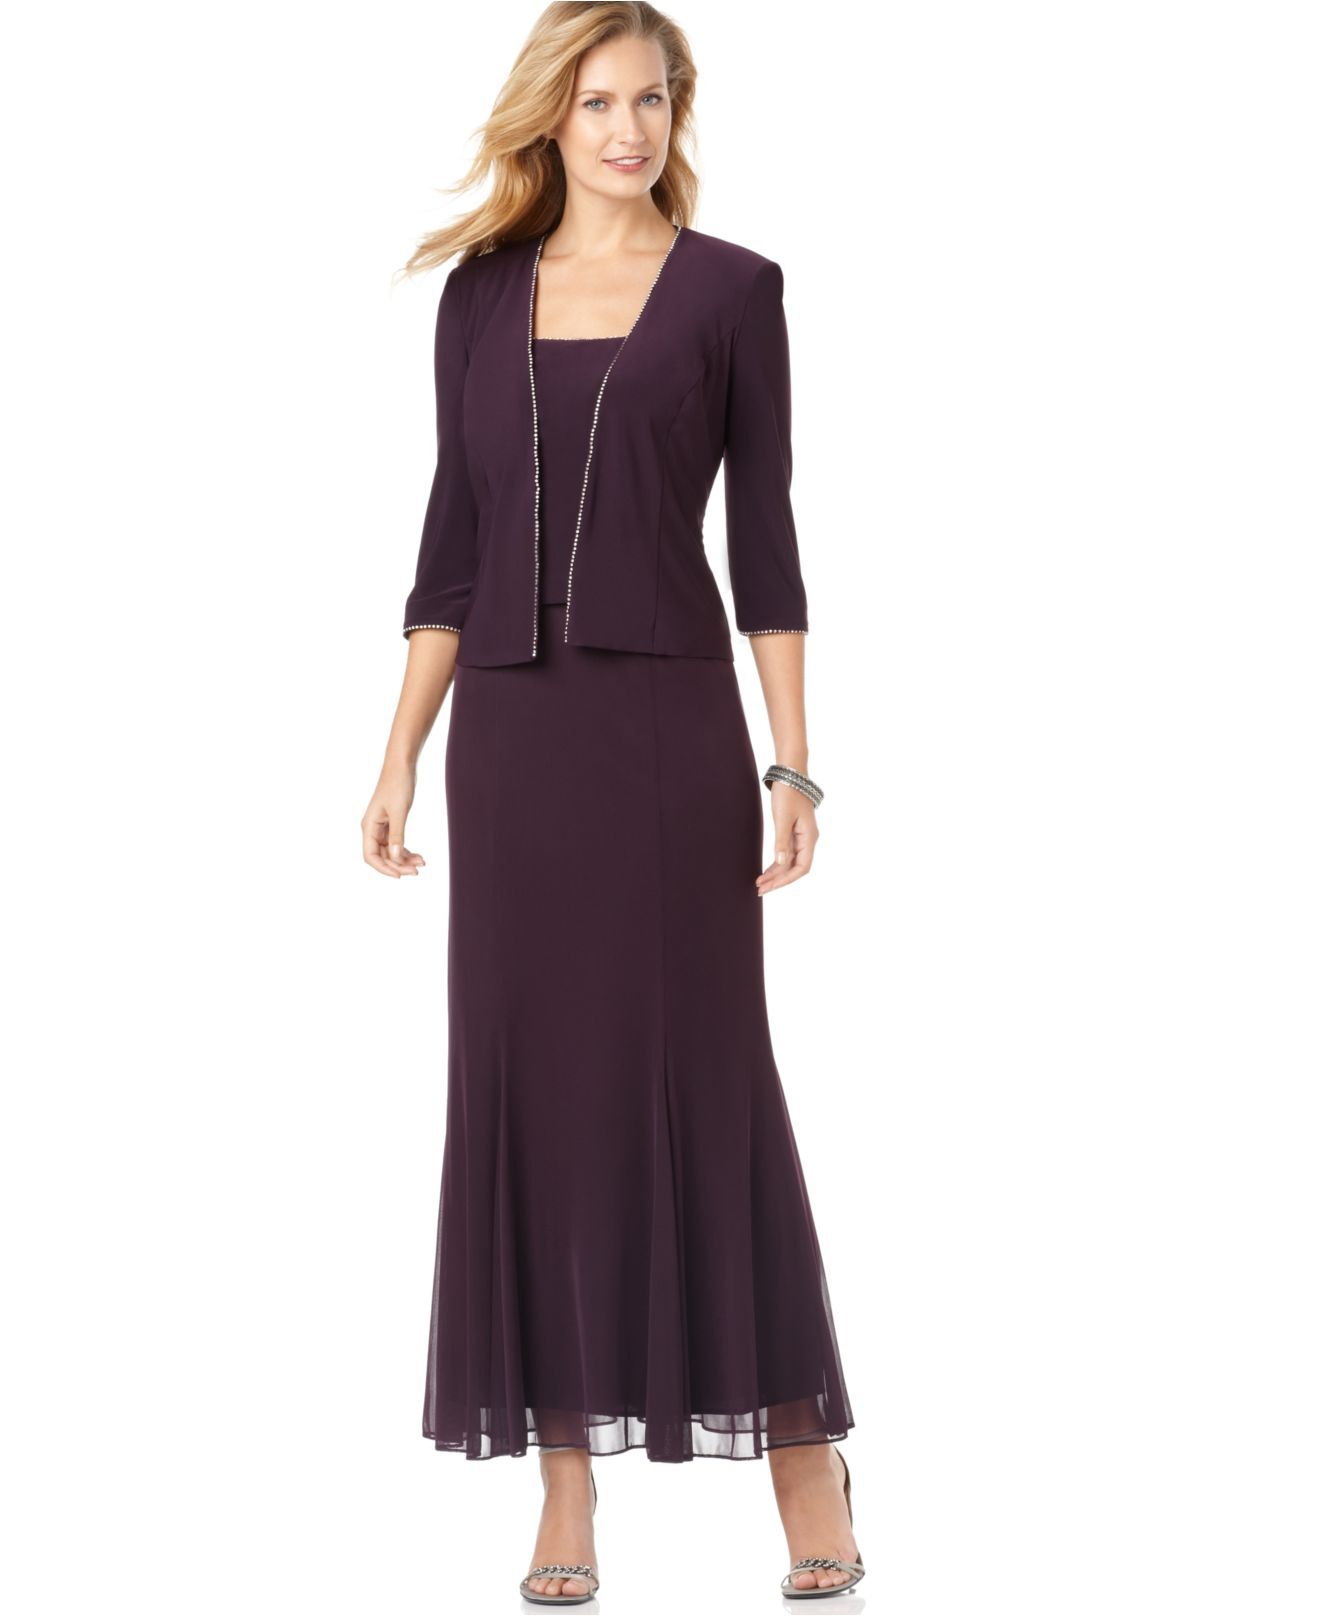 Pin On Mommy Of The Bride/Groom Dresses :